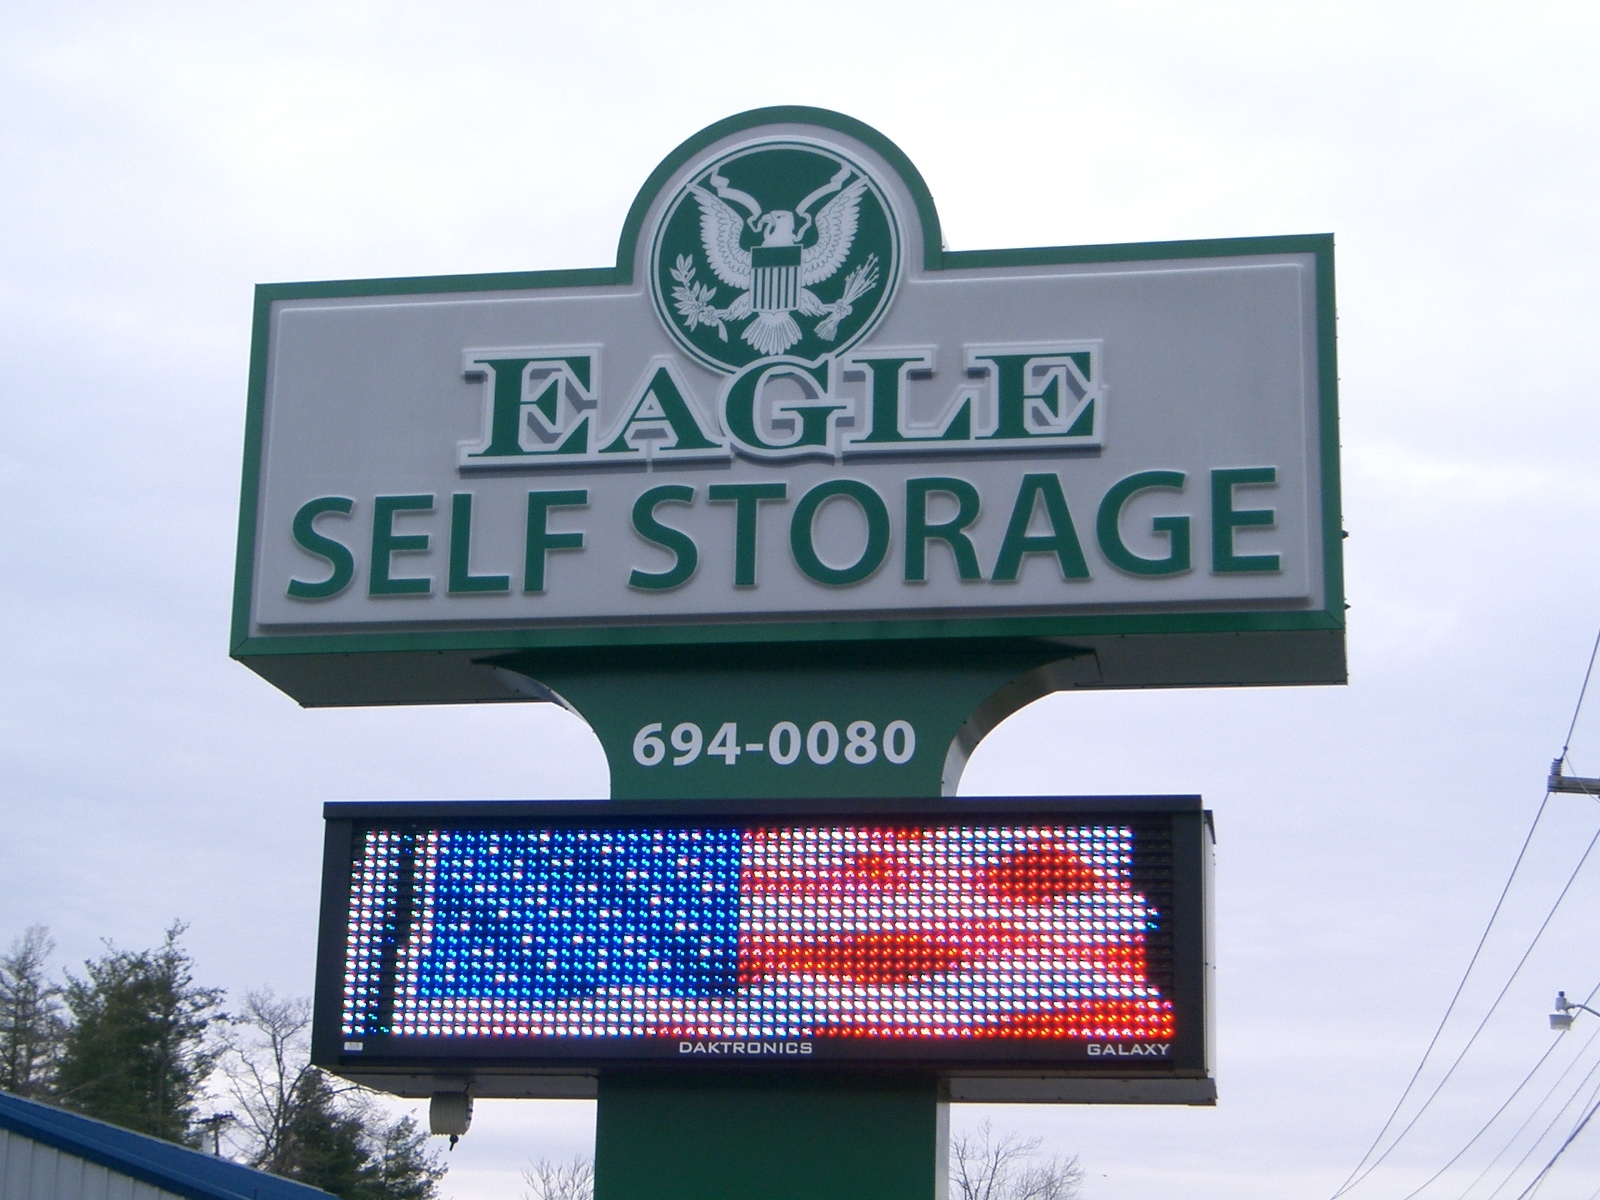 eagle self storage coupons near me in east flat rock 8coupons. Black Bedroom Furniture Sets. Home Design Ideas